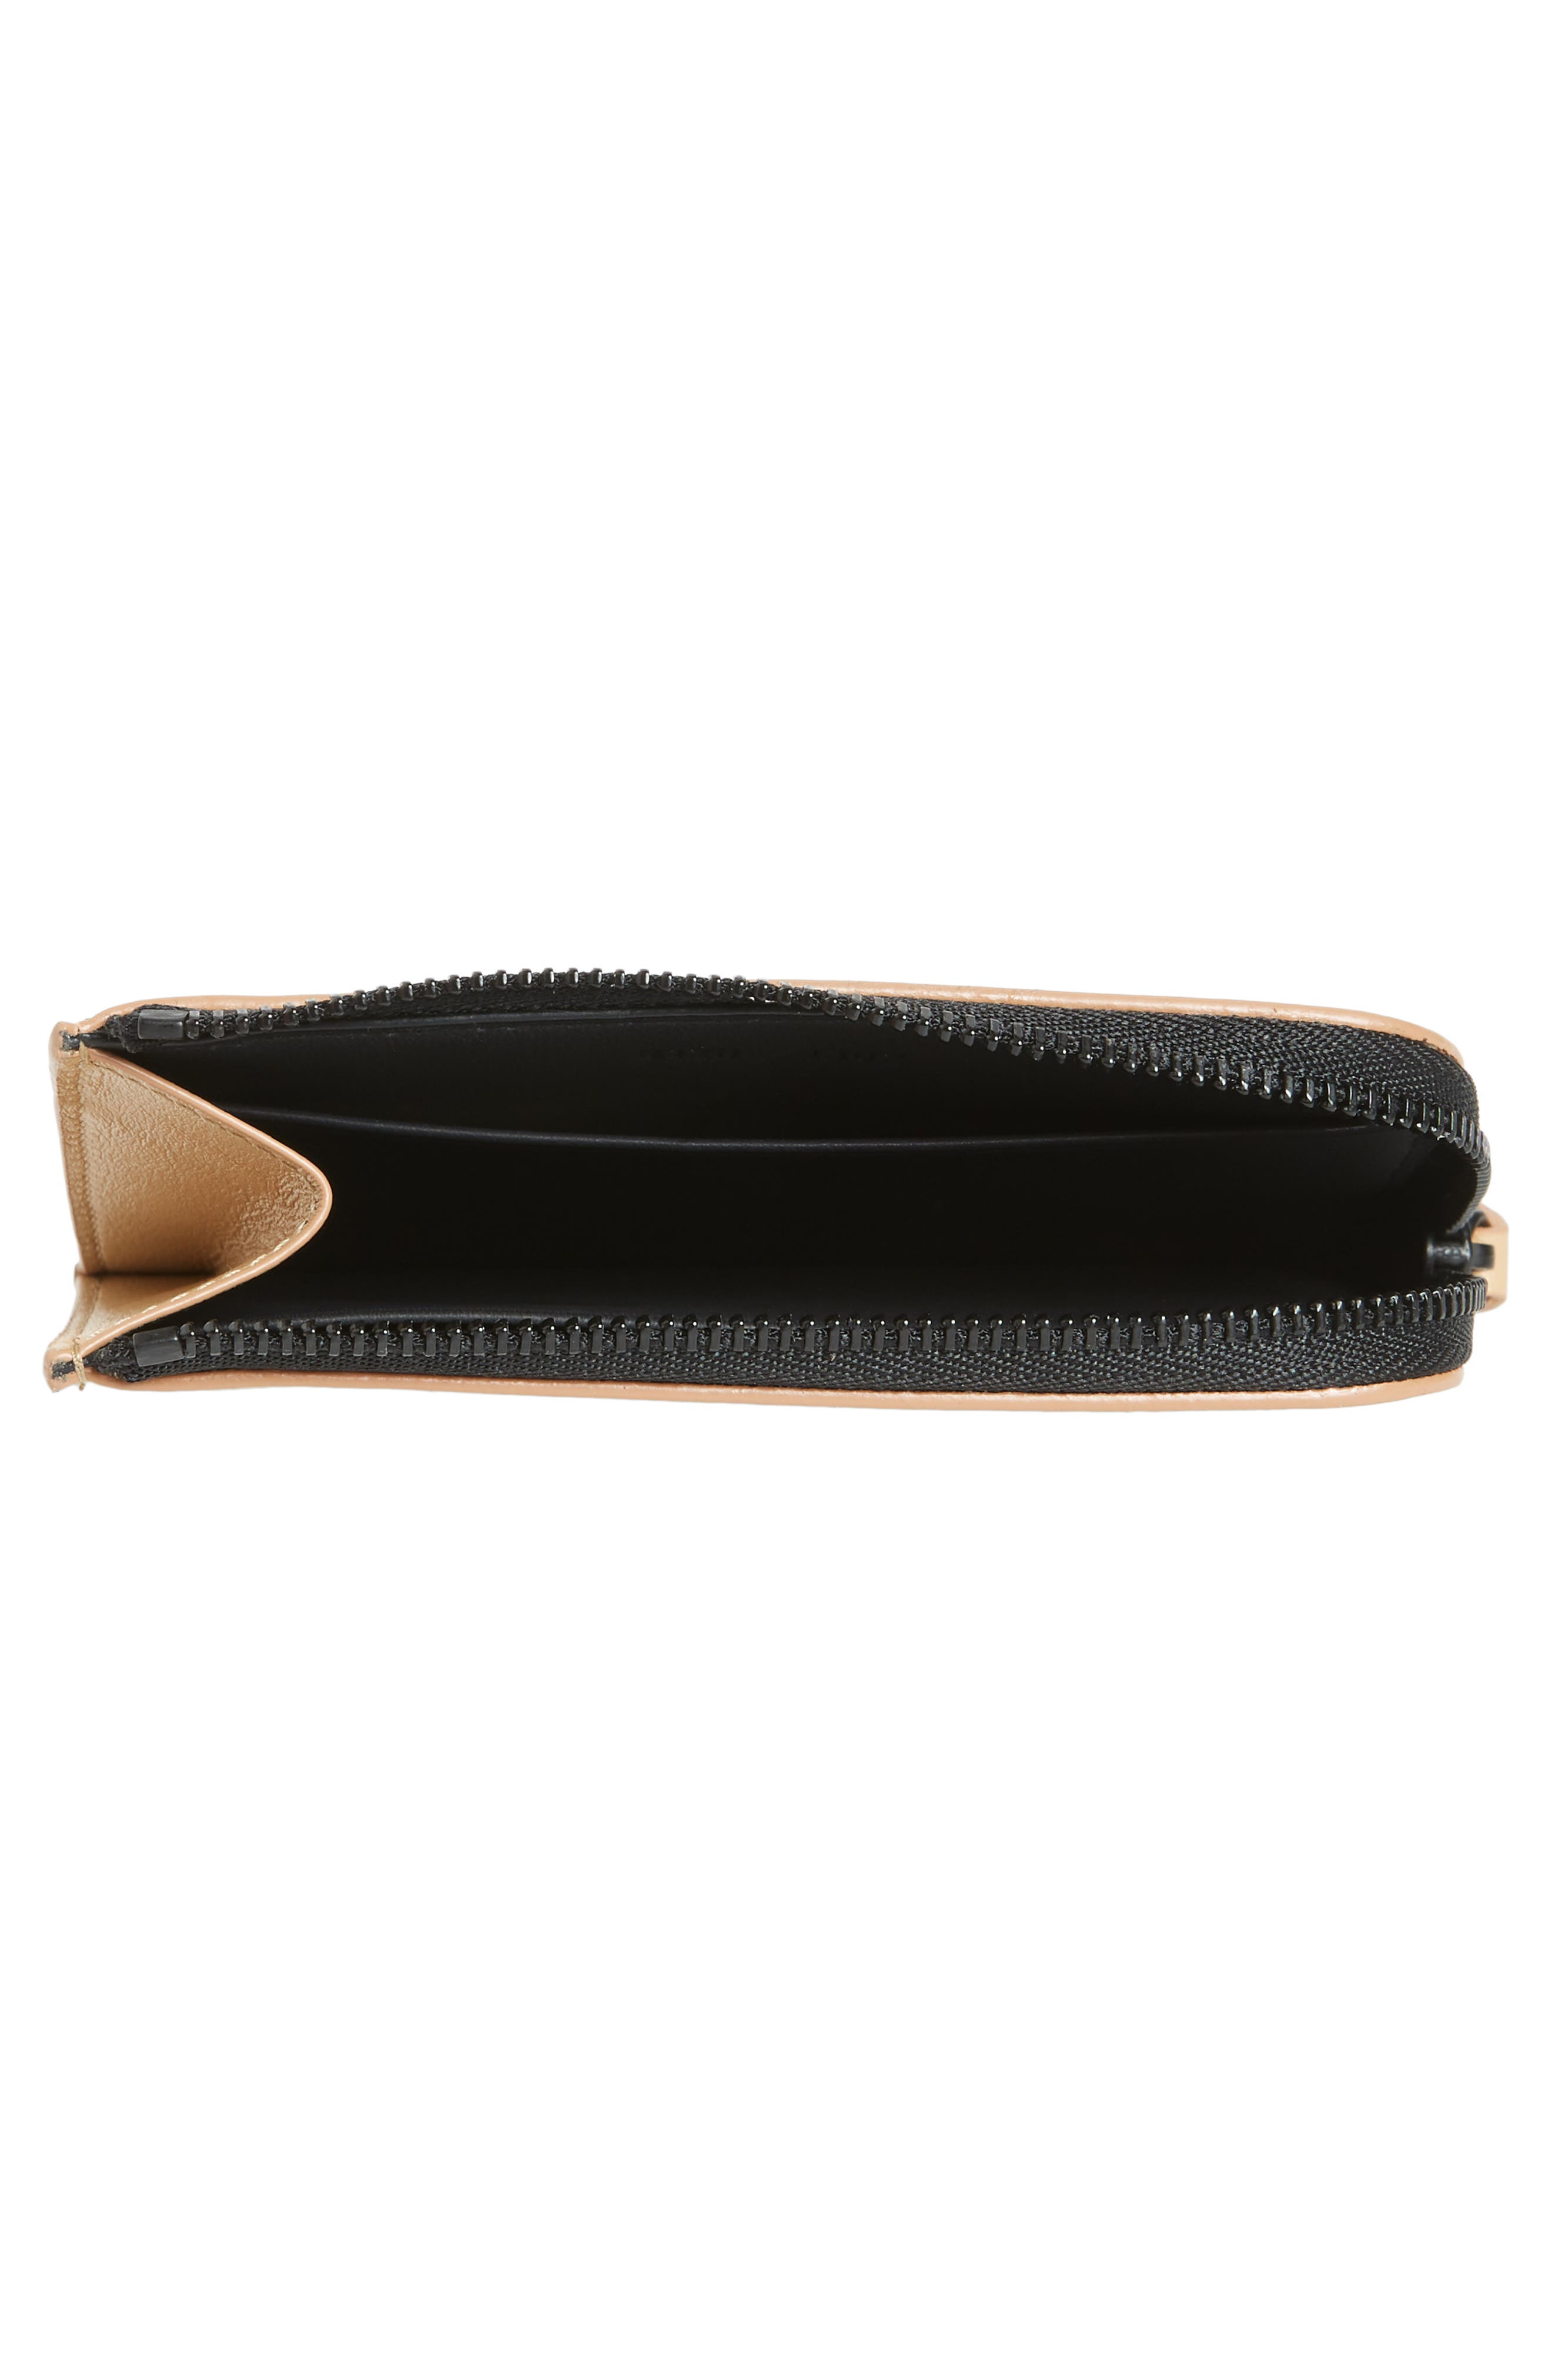 COMMON PROJECTS, Nappa Leather Zip Wallet, Alternate thumbnail 2, color, TAN